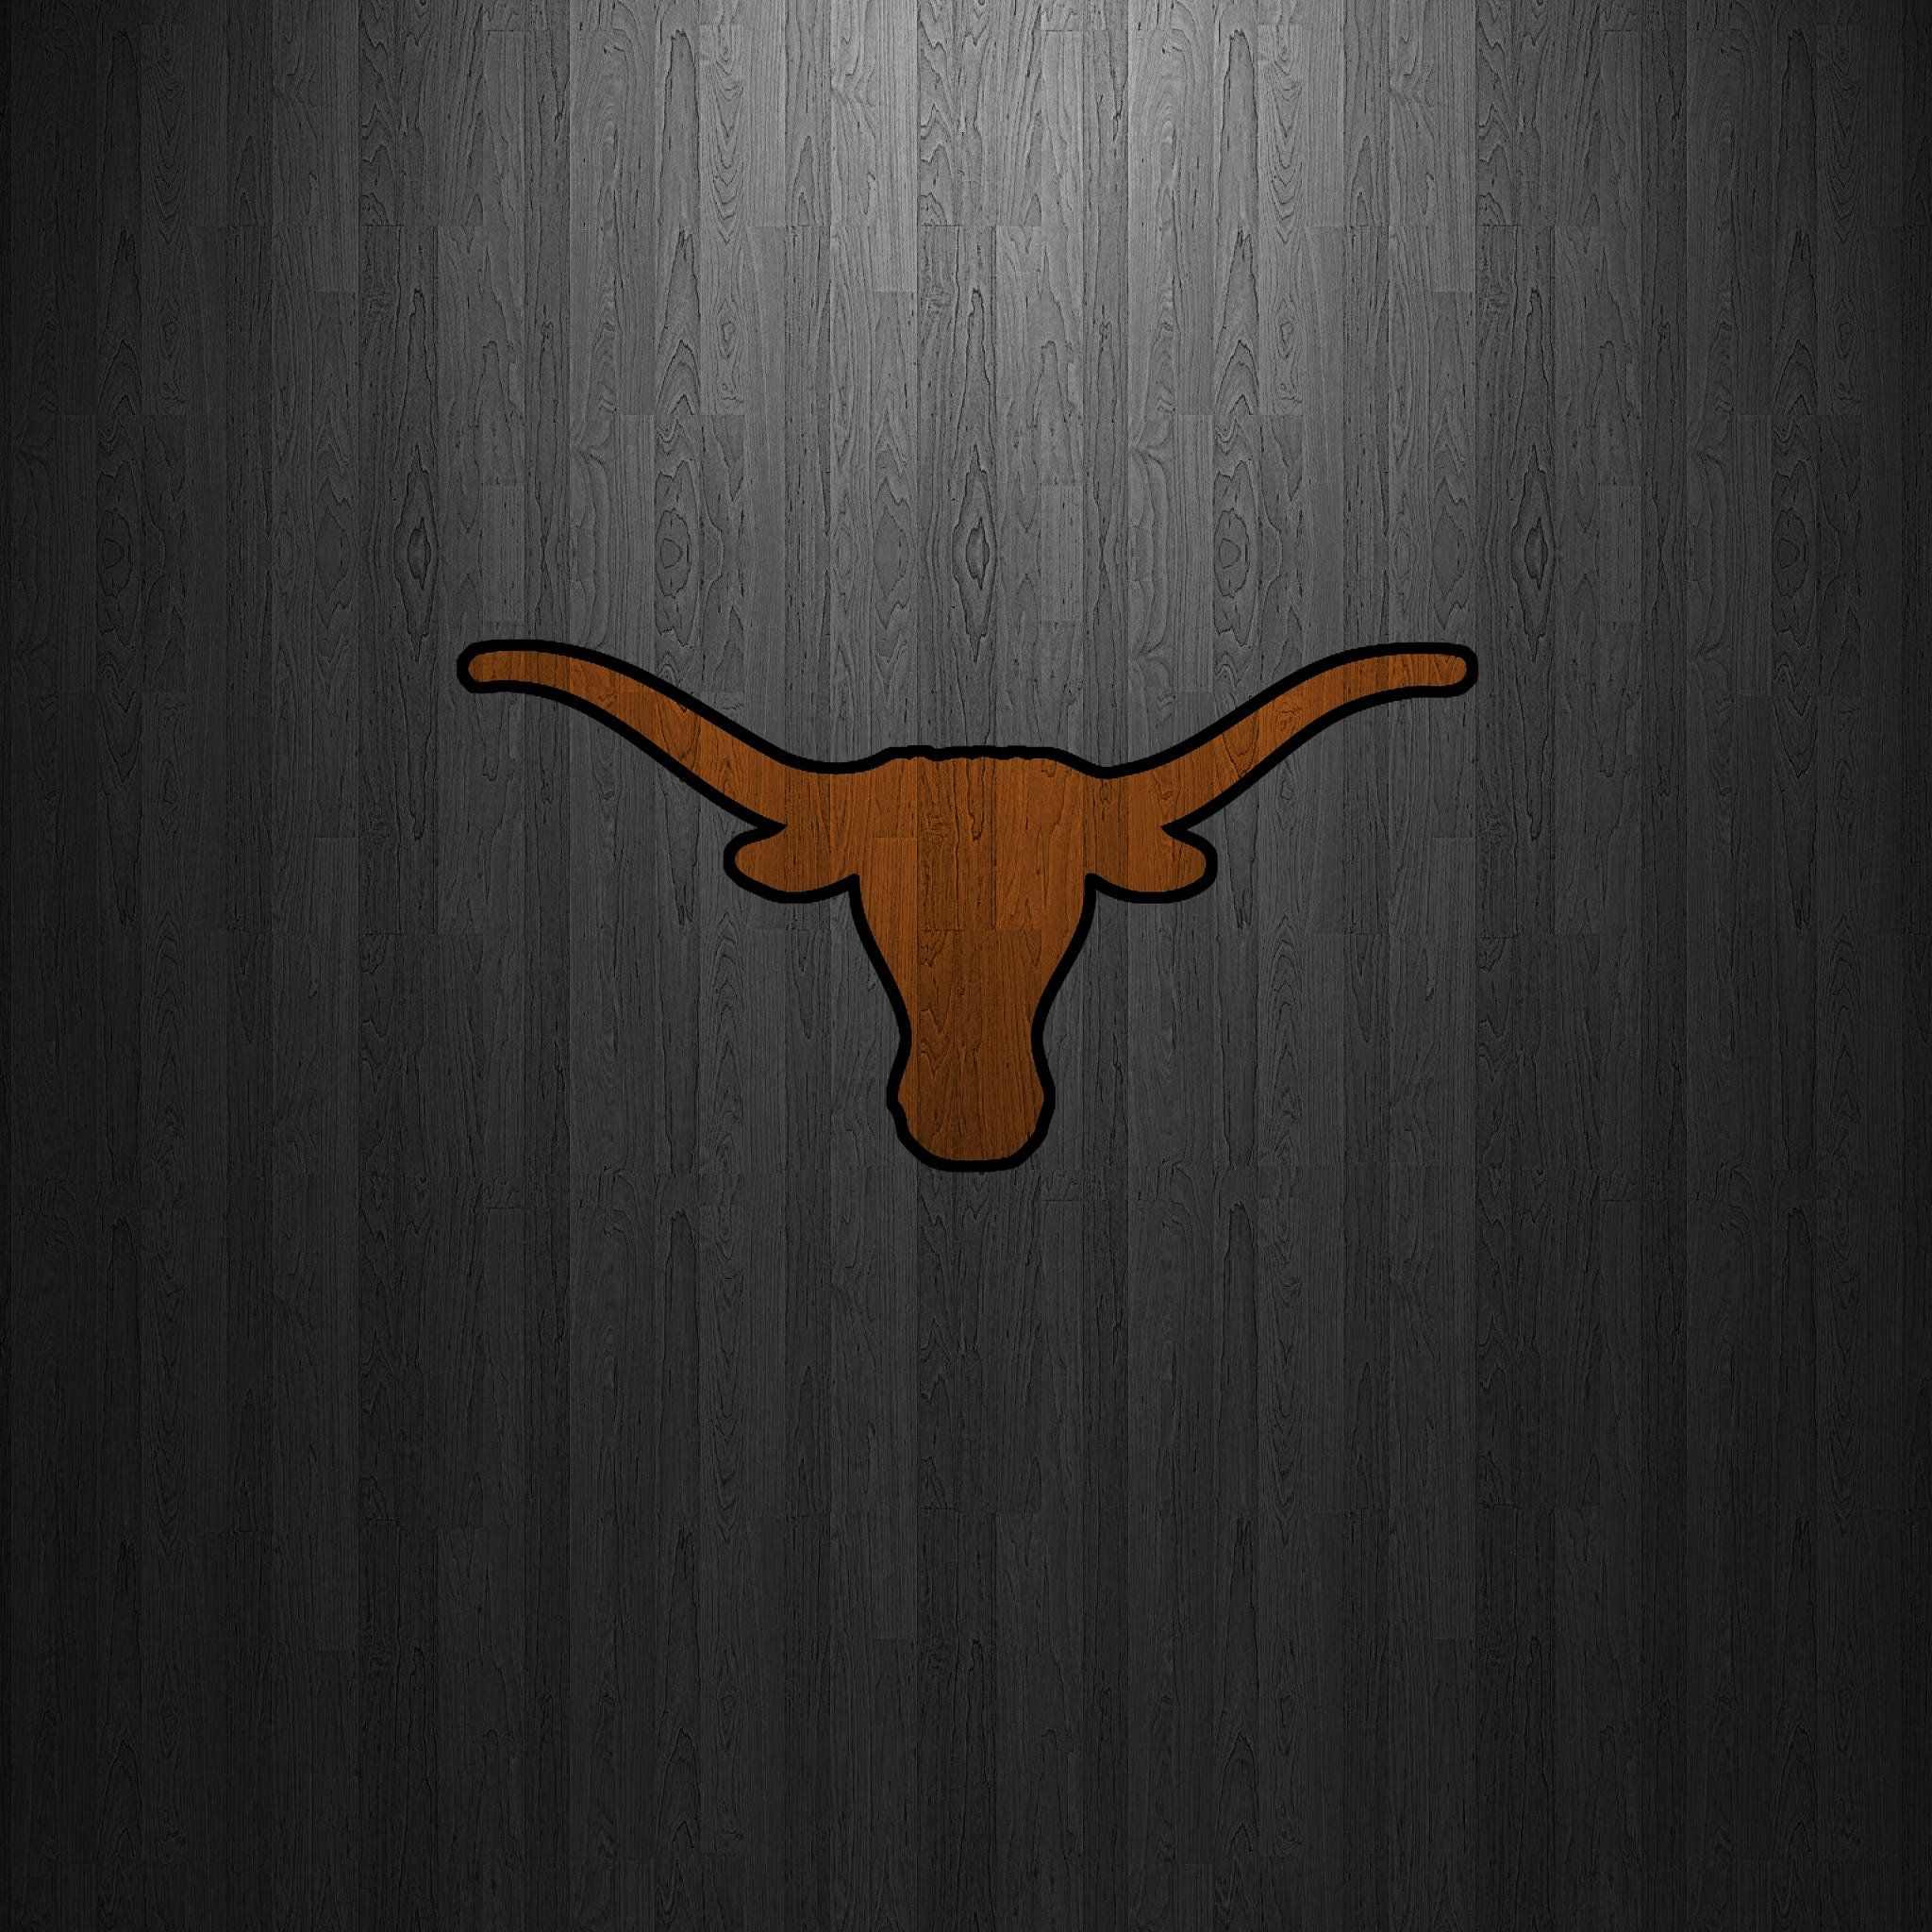 Hd Texas Longhorns Football Backgrounds Wallpapers Backgrounds Texas Longhorns Football Longhorns Football Texas Longhorns Logo